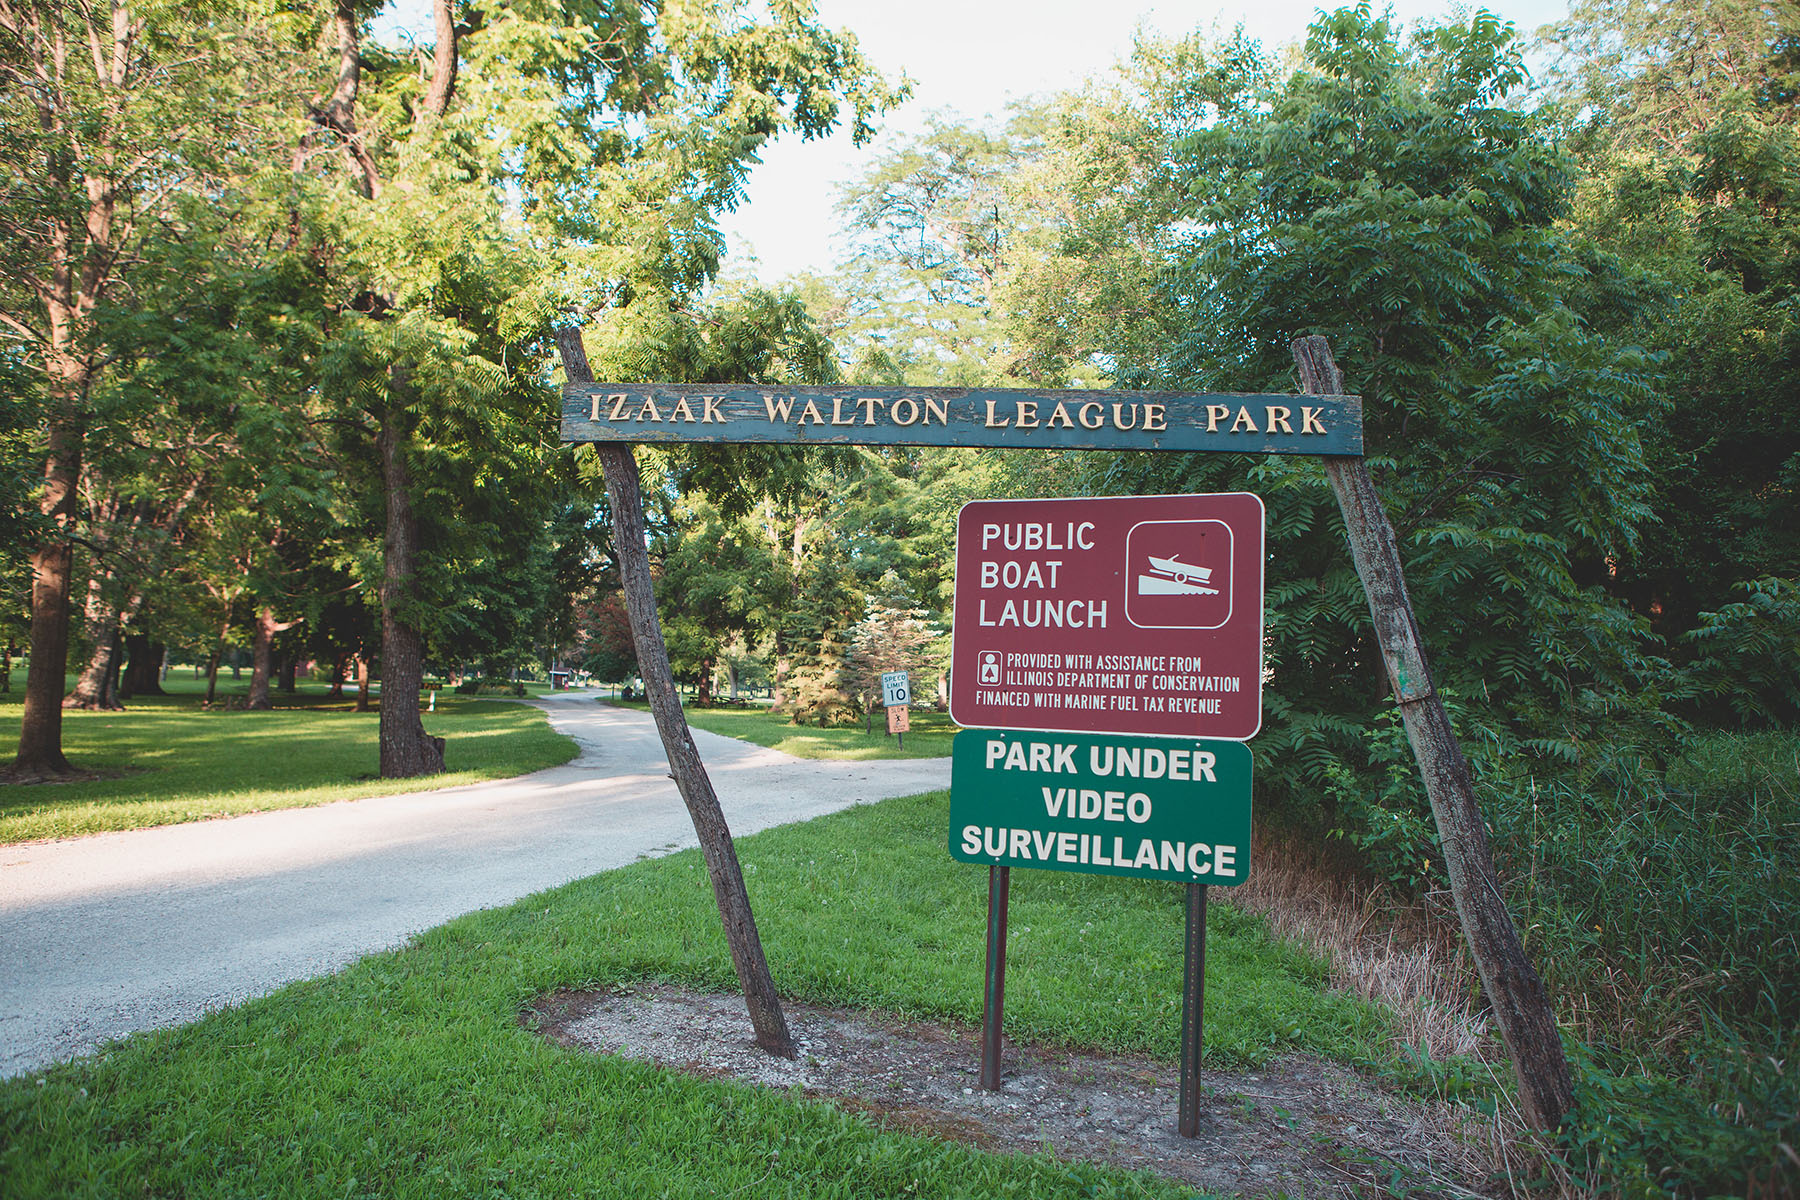 For the past 15 years, the Izaak Walton League Park has been operating in the Membership Sports and Recreation Clubs industry within the Amusement and Recreation Services sector.